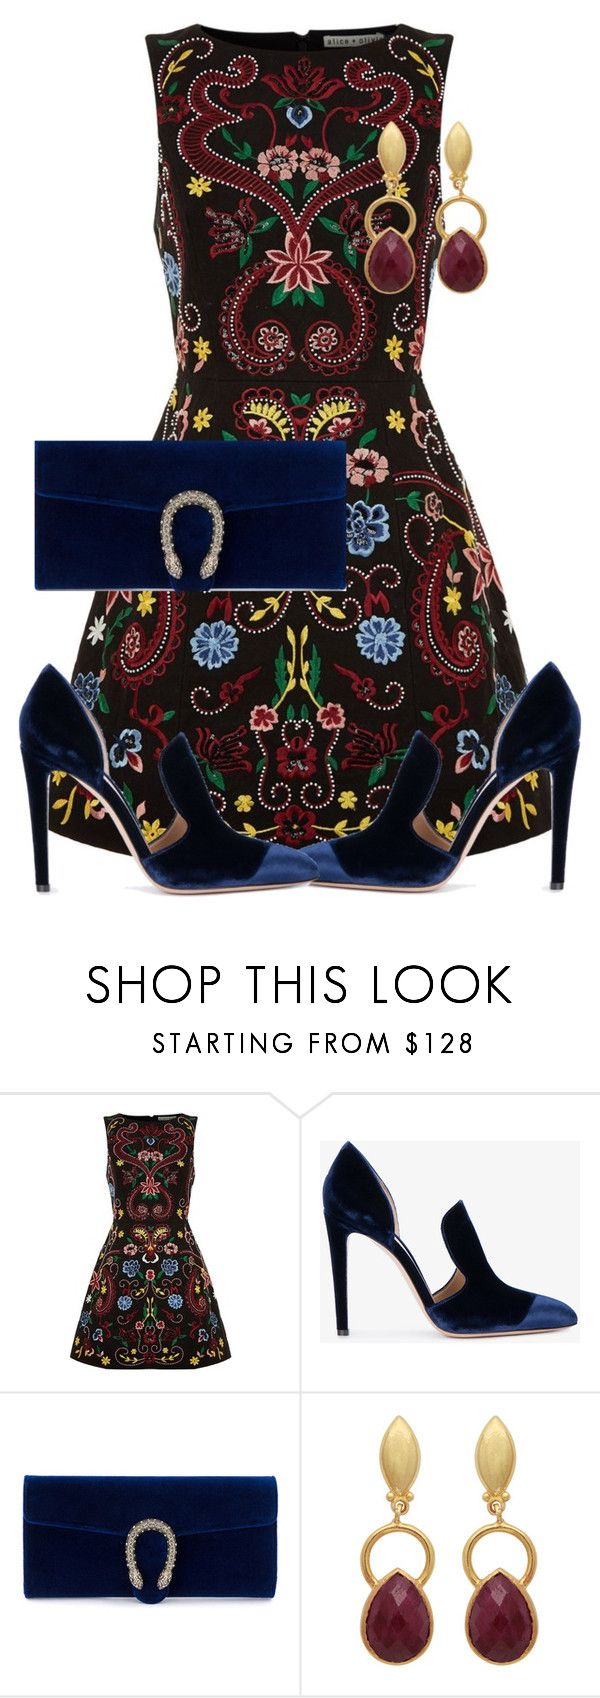 """""""Crushed Velvet"""" by claire394 ❤ liked on Polyvore featuring Alice + Olivia, Gianvito Rossi and Gucci"""